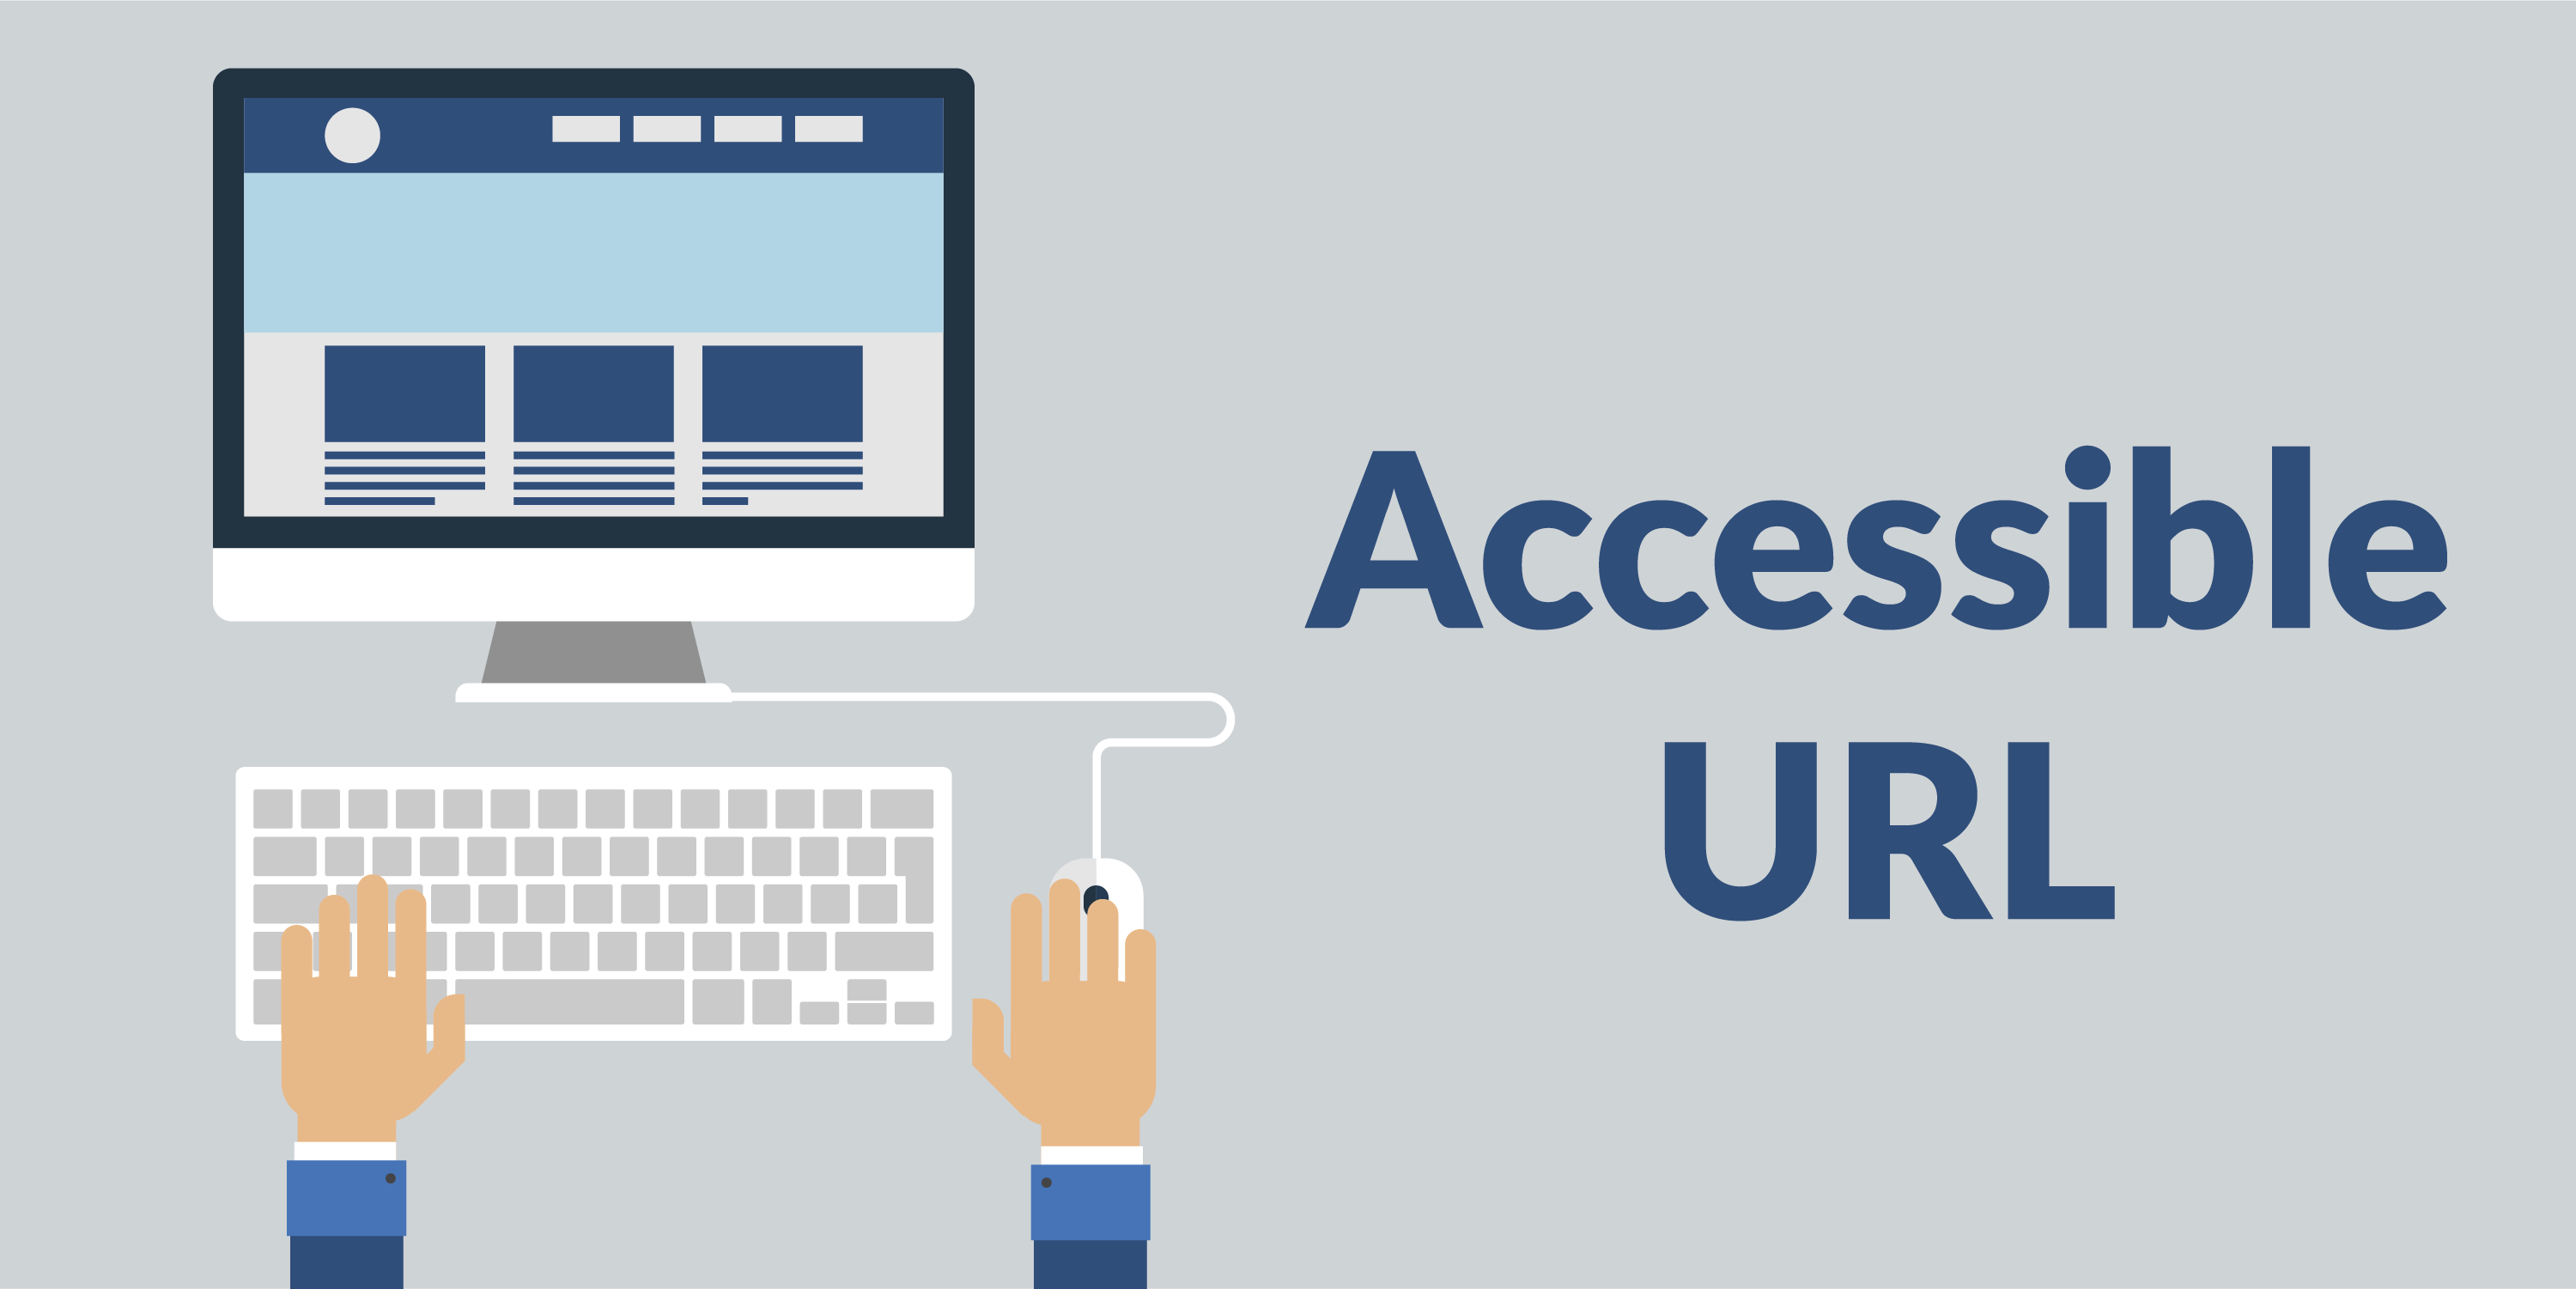 ACCESSIBLE URL